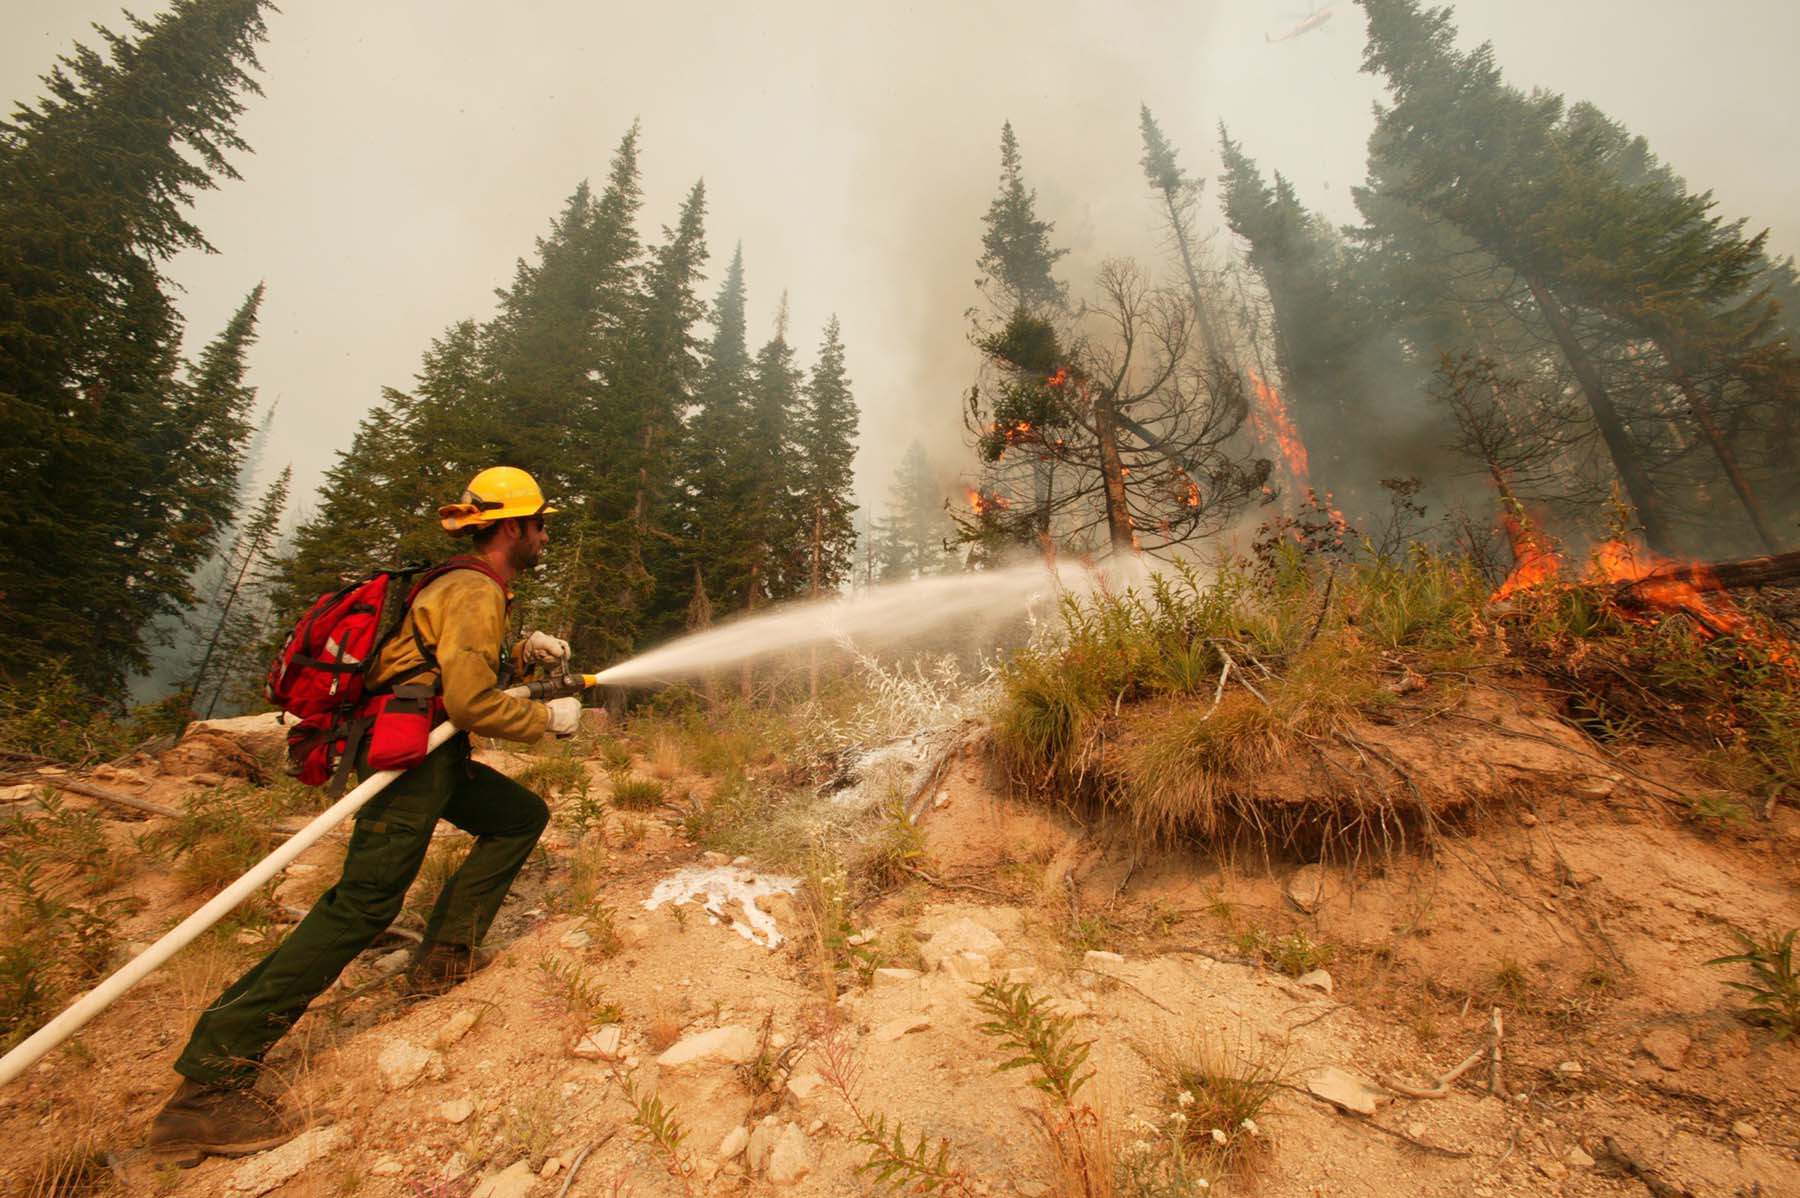 wildland firefighter using a hose on a fire